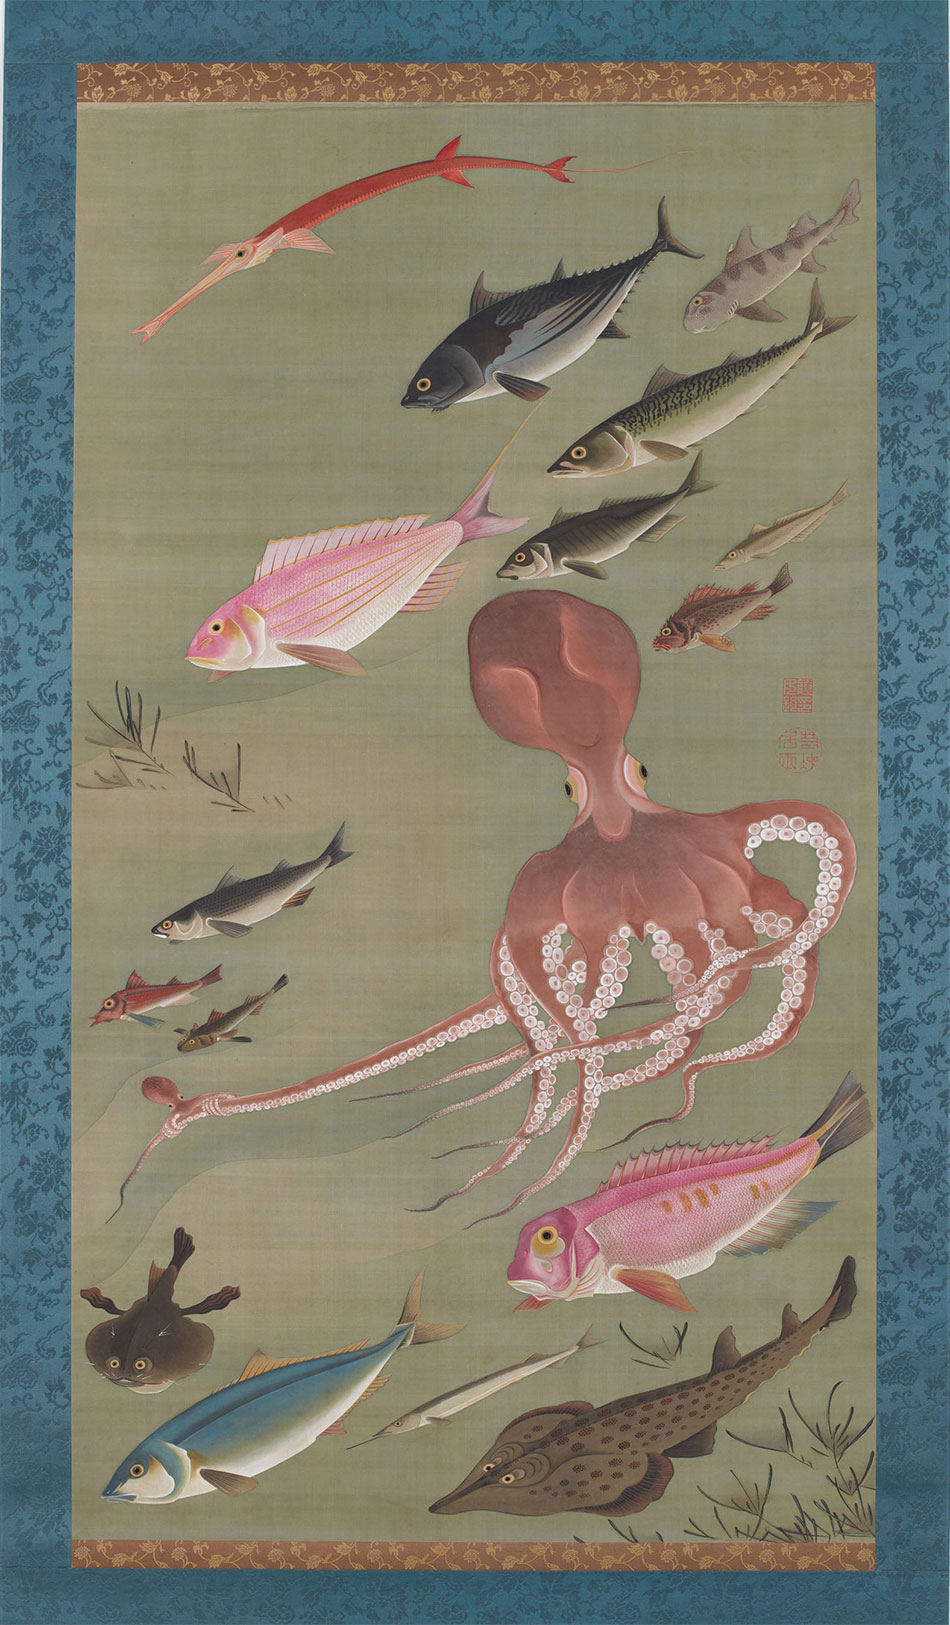 27_jakuchu_jakuchu_fish-and-octopus_950_w